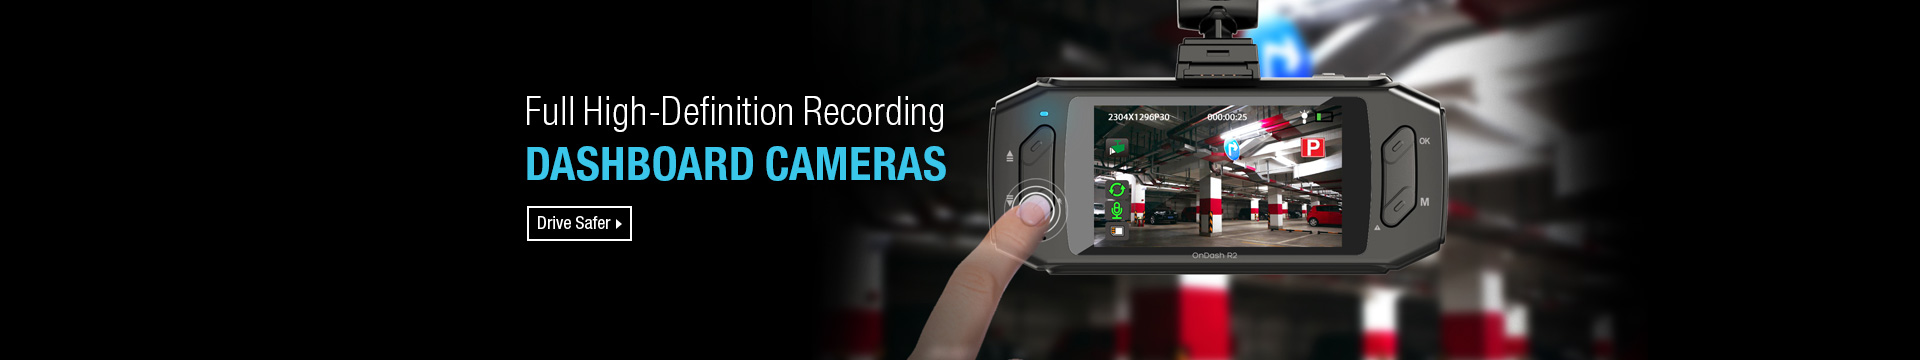 Full High-Definition Recording Dashboard Cameras